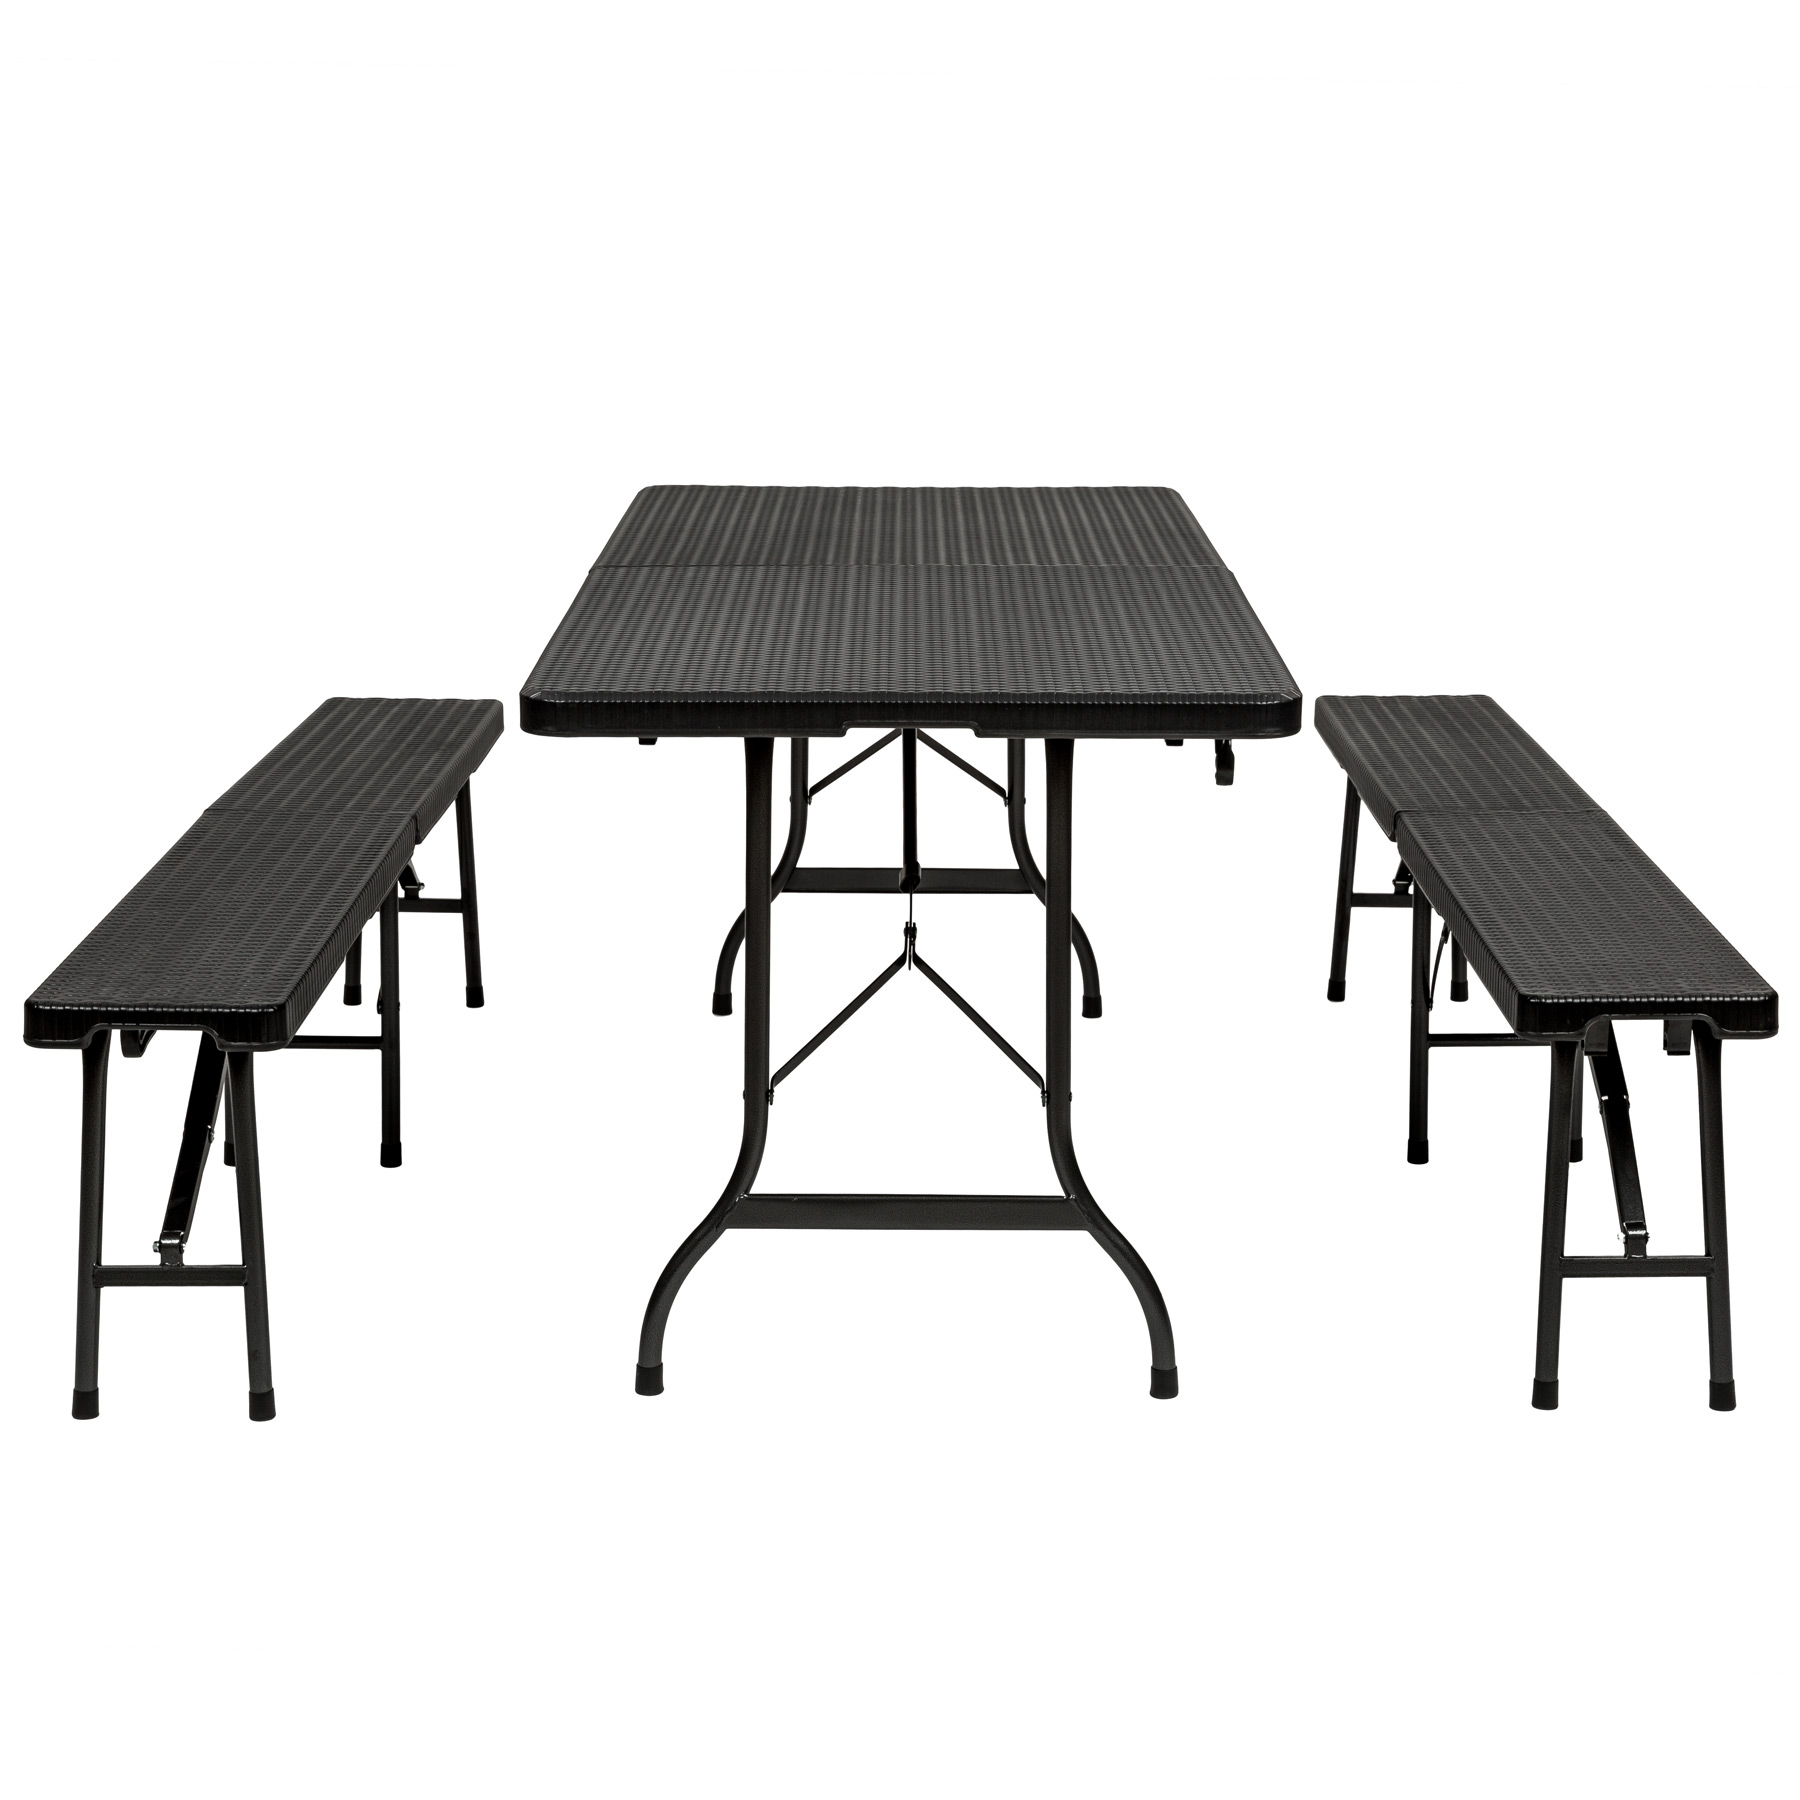 Portable Dining Table And Chairs Folding Portable Table Benches Camping Set Garden Dining